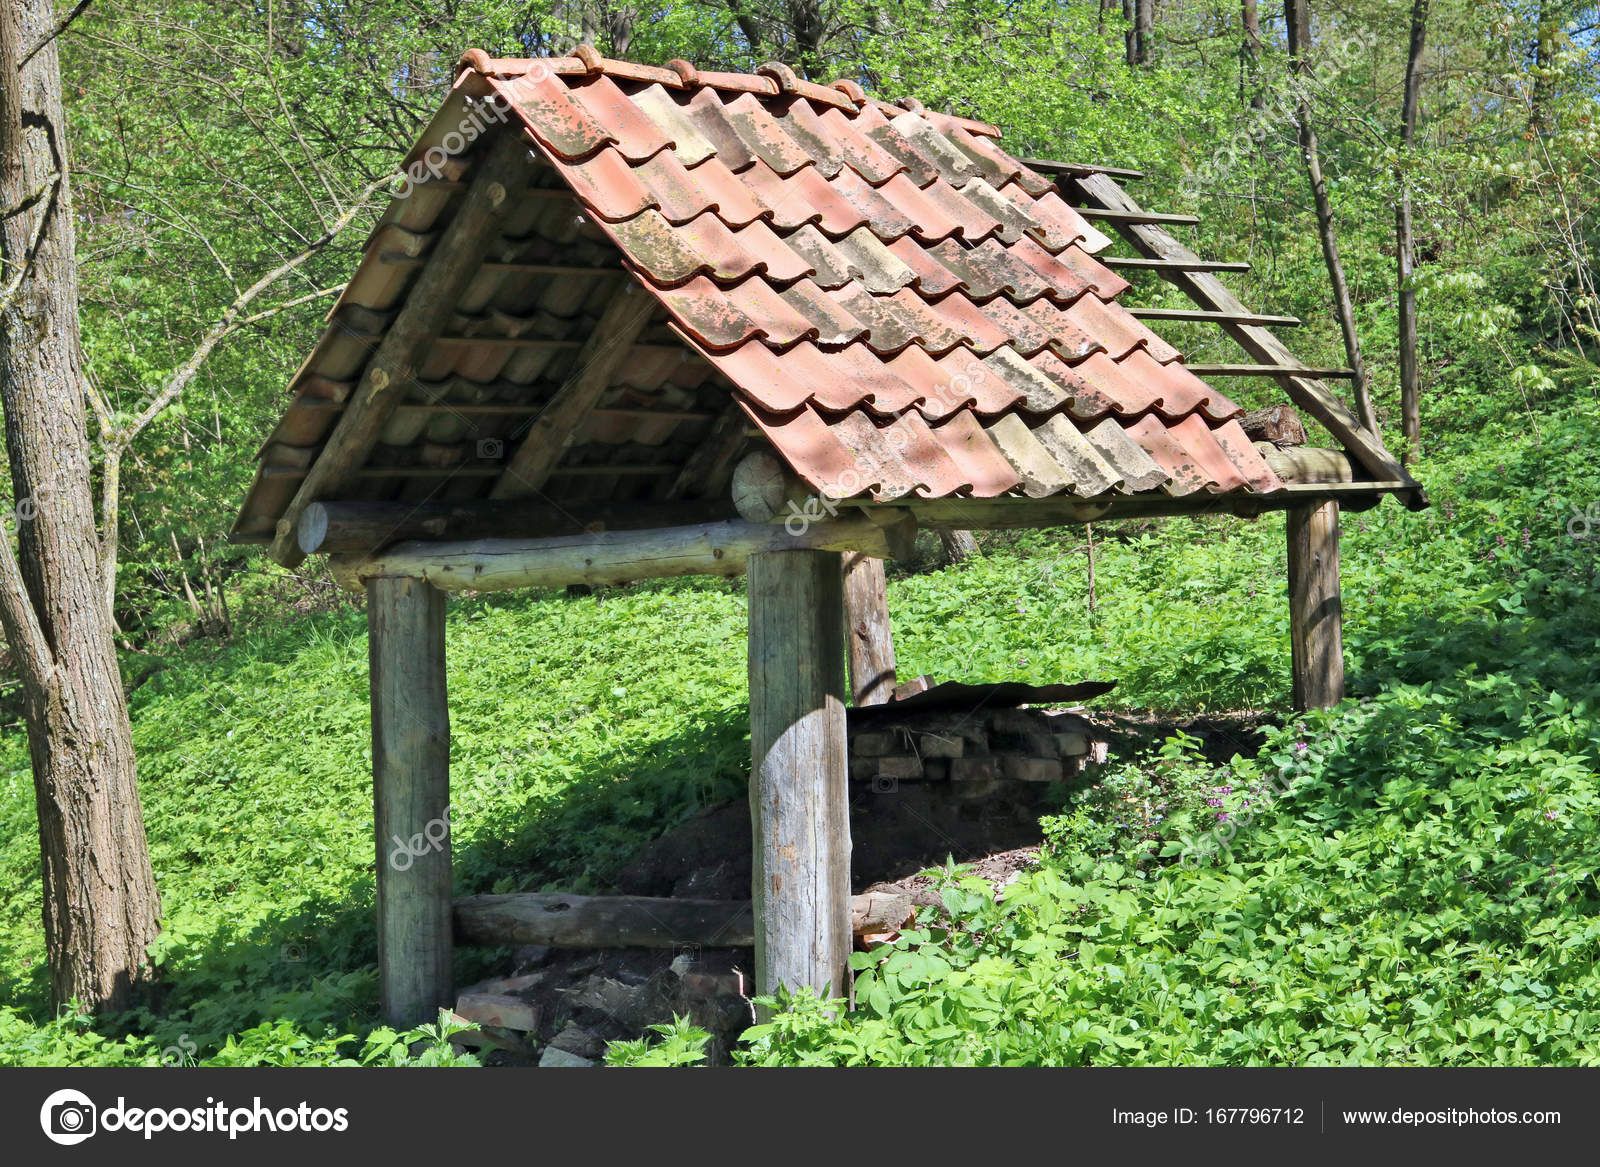 A Shed Without Walls For Storage Of Firewood Is Located On The Slope Of A Forest  Hill. Spring Sunny Day U2014 Photo By Vilaxlt